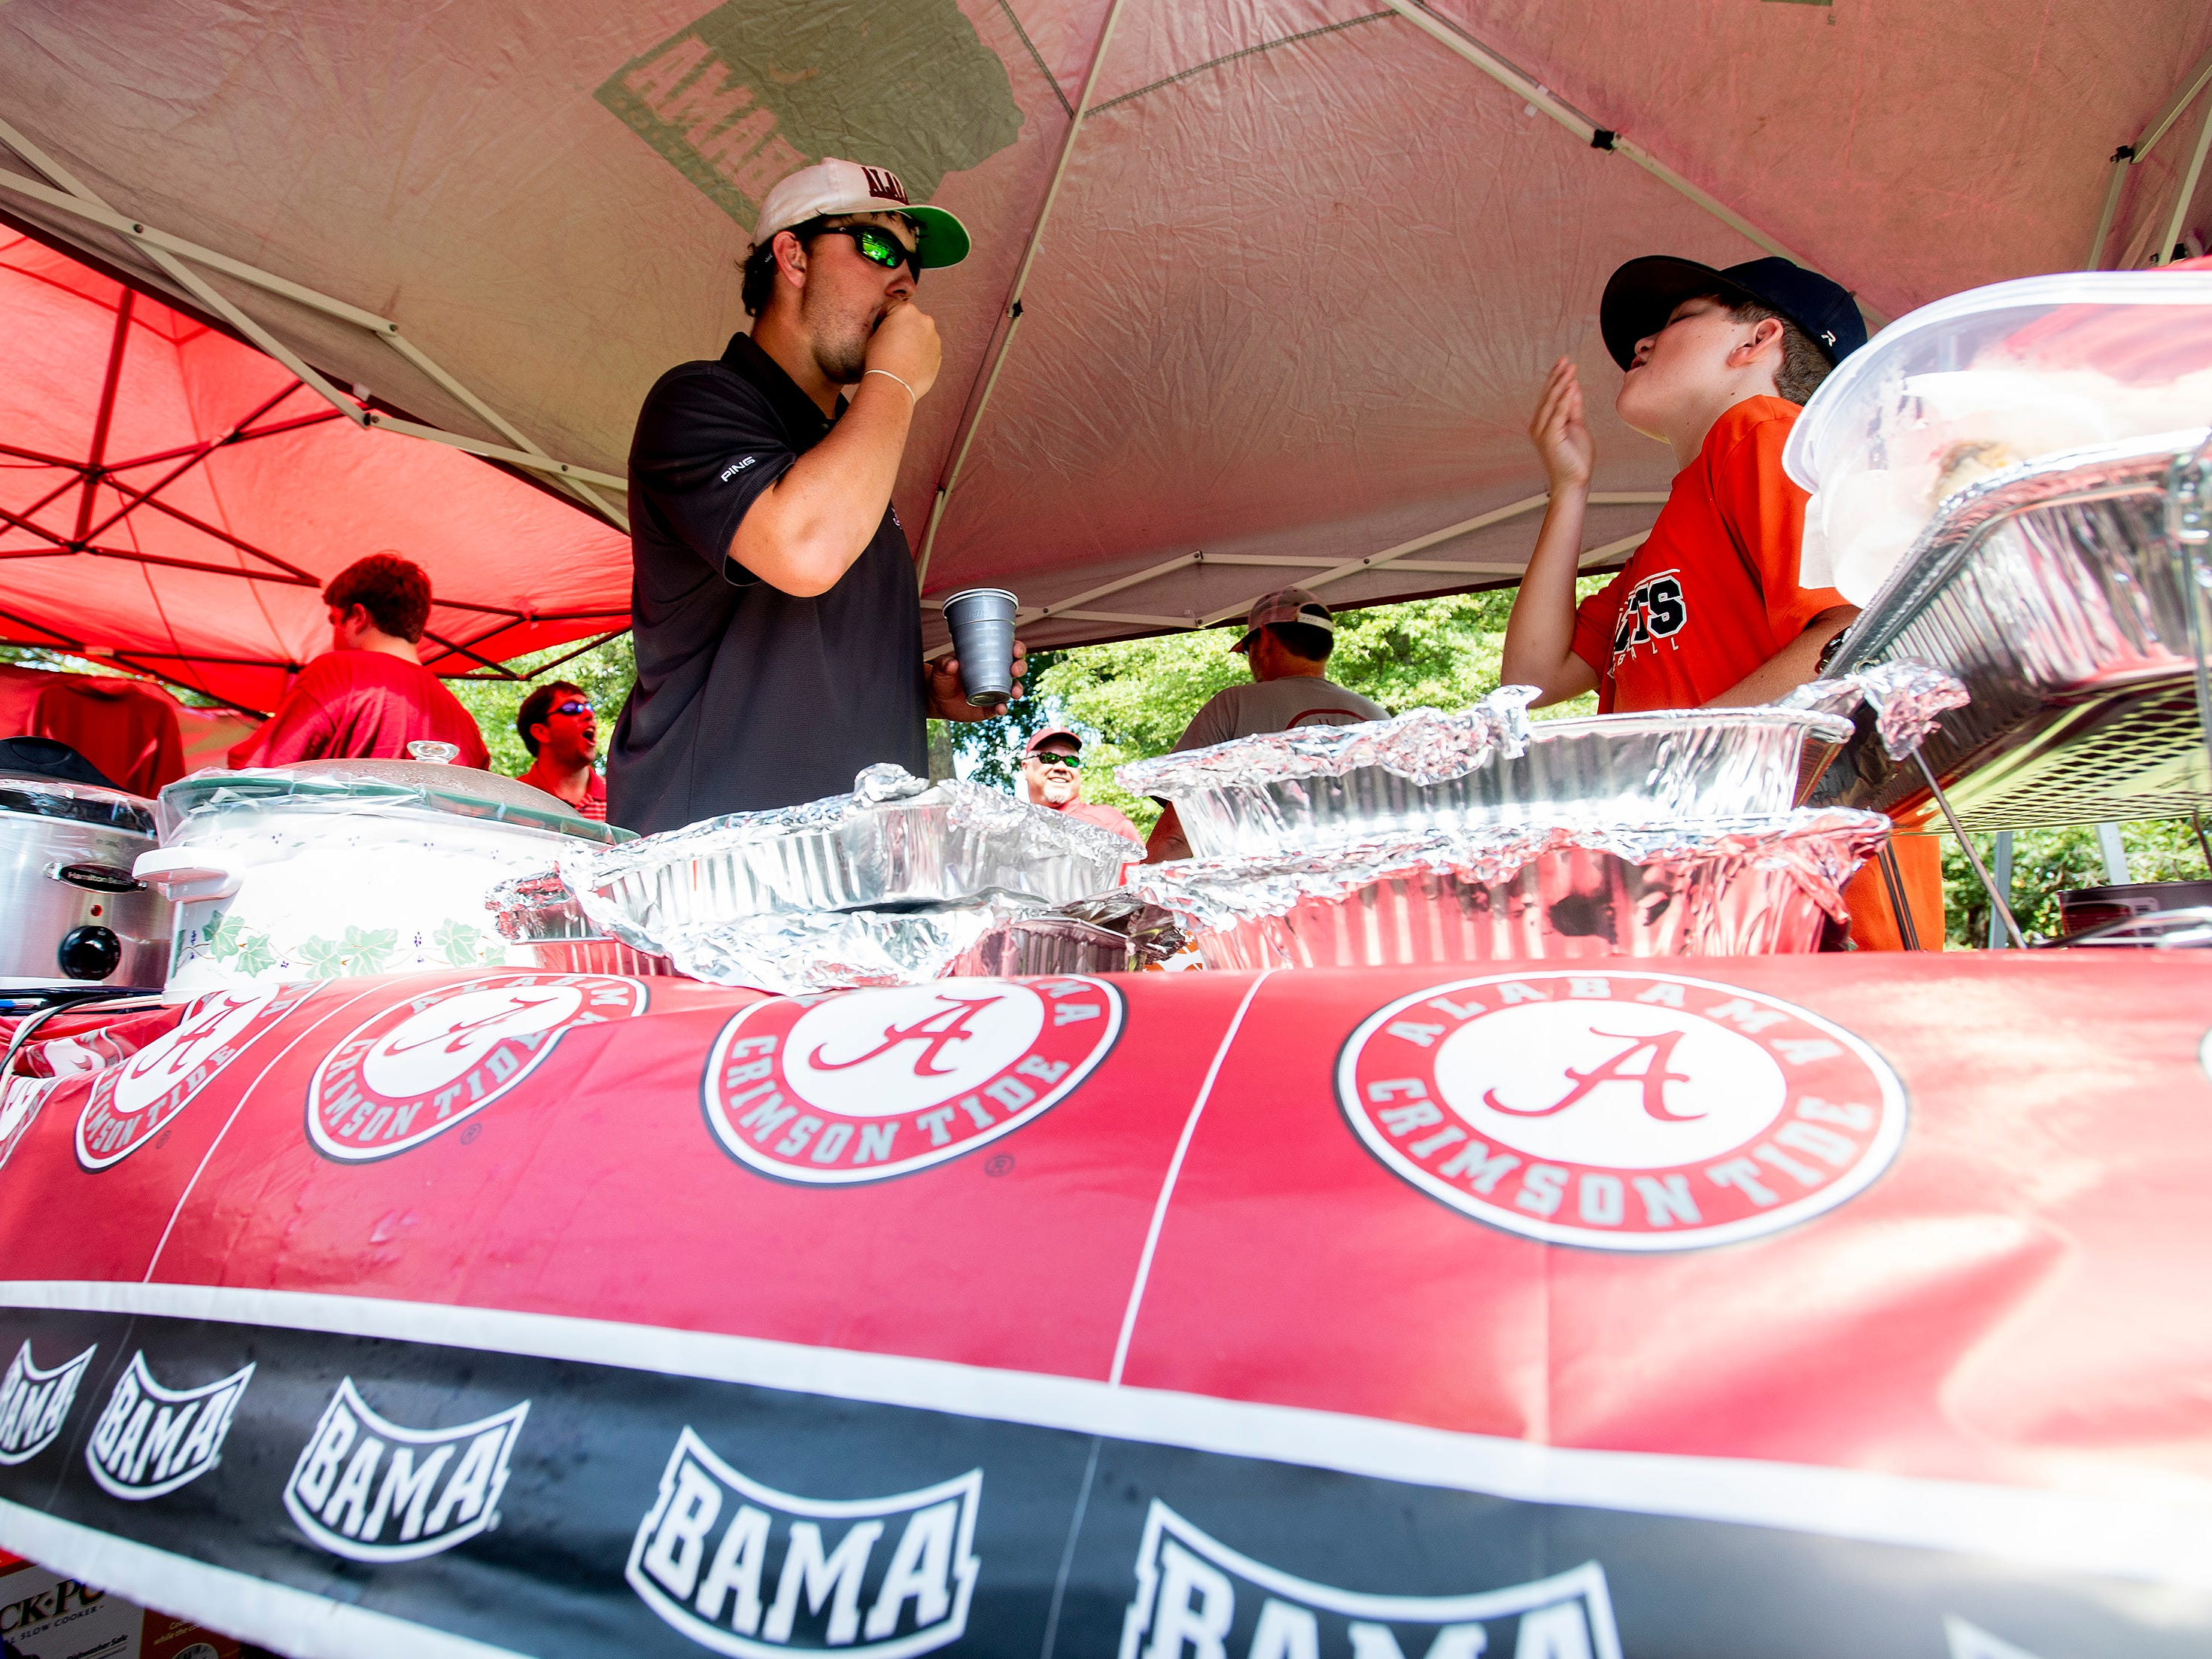 Alabama fans tailgate on the Ole Miss campus in Oxford, Ms., on Saturday September 15, 2018.